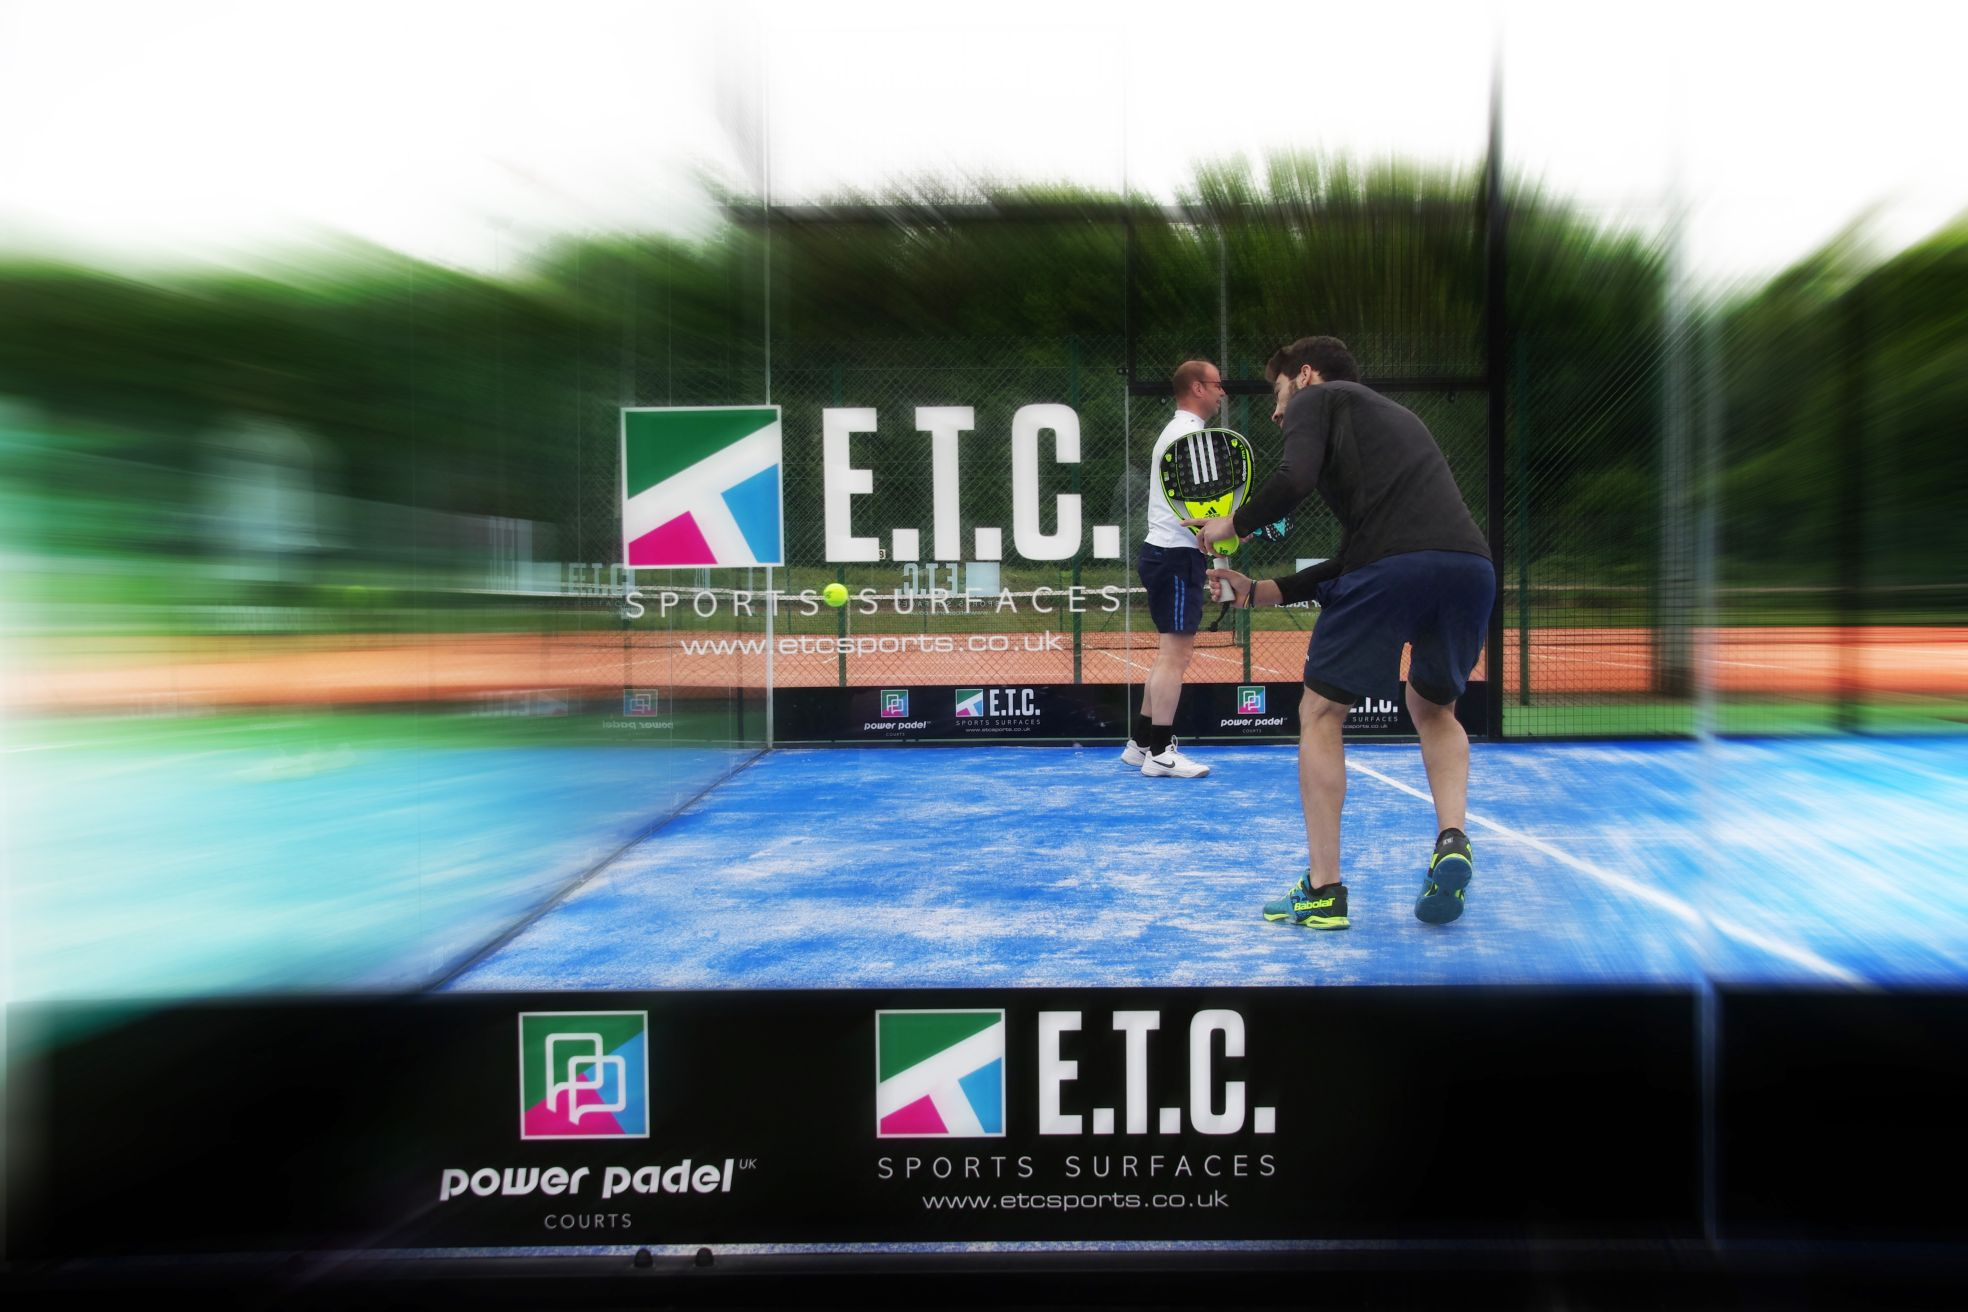 Power Padel is a new kind of Padel court installation that can be easily lifted, moved or stored to accommodate main tennis court schedules.